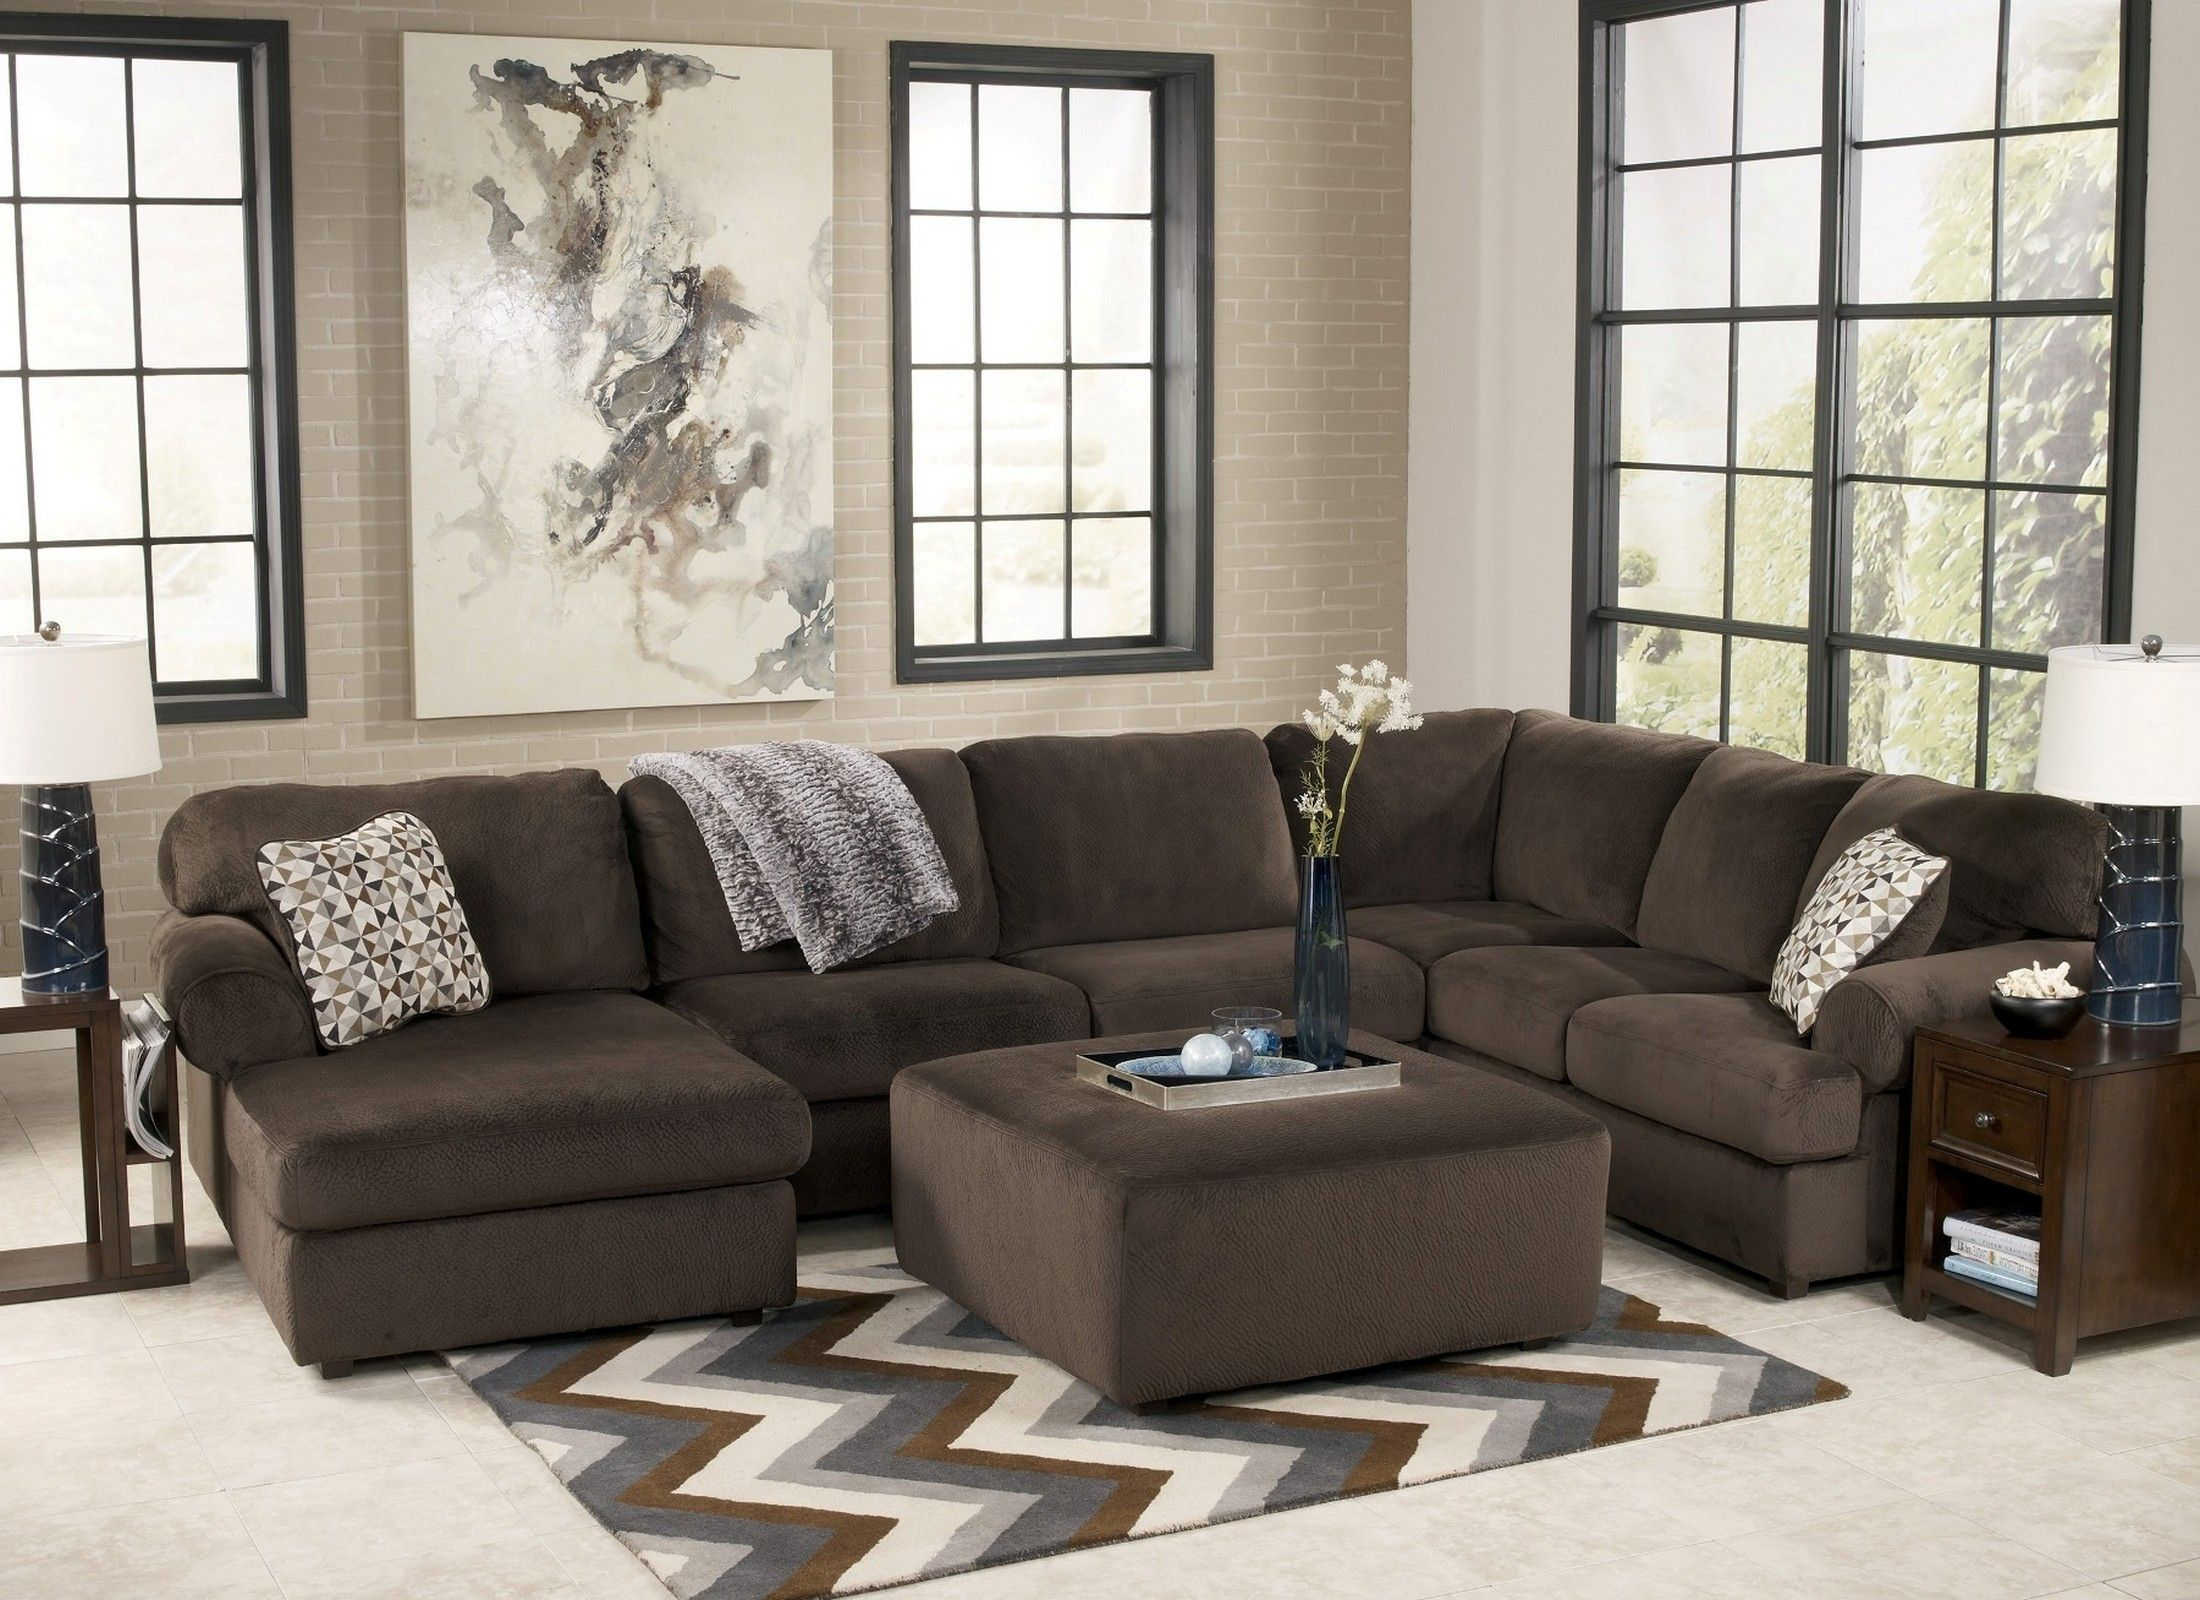 Jessa Place Chocolate Laf Sectional Asl 3980416 Sec In 2020 Sectional Sofa Romantic Living Room Living Room Sets Furniture